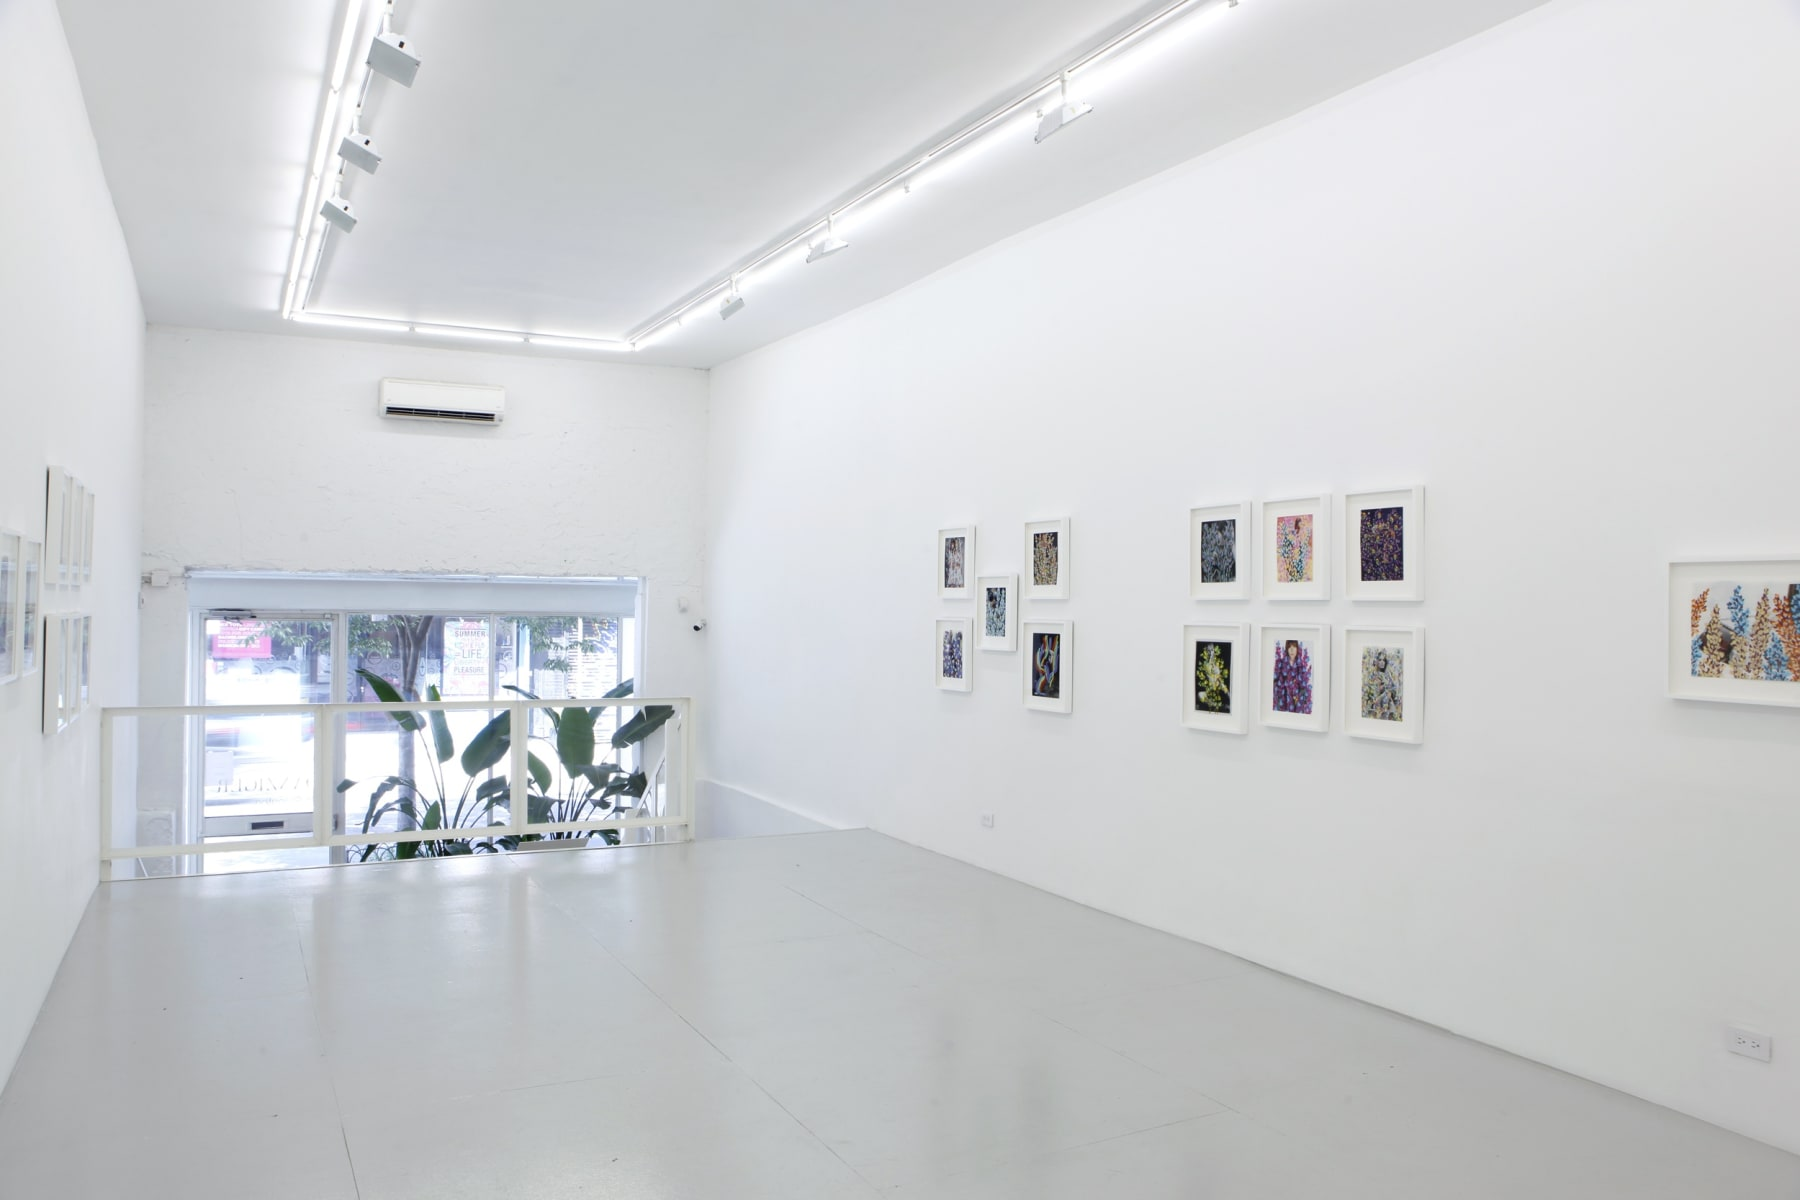 Danziger Gallery, New York, New York